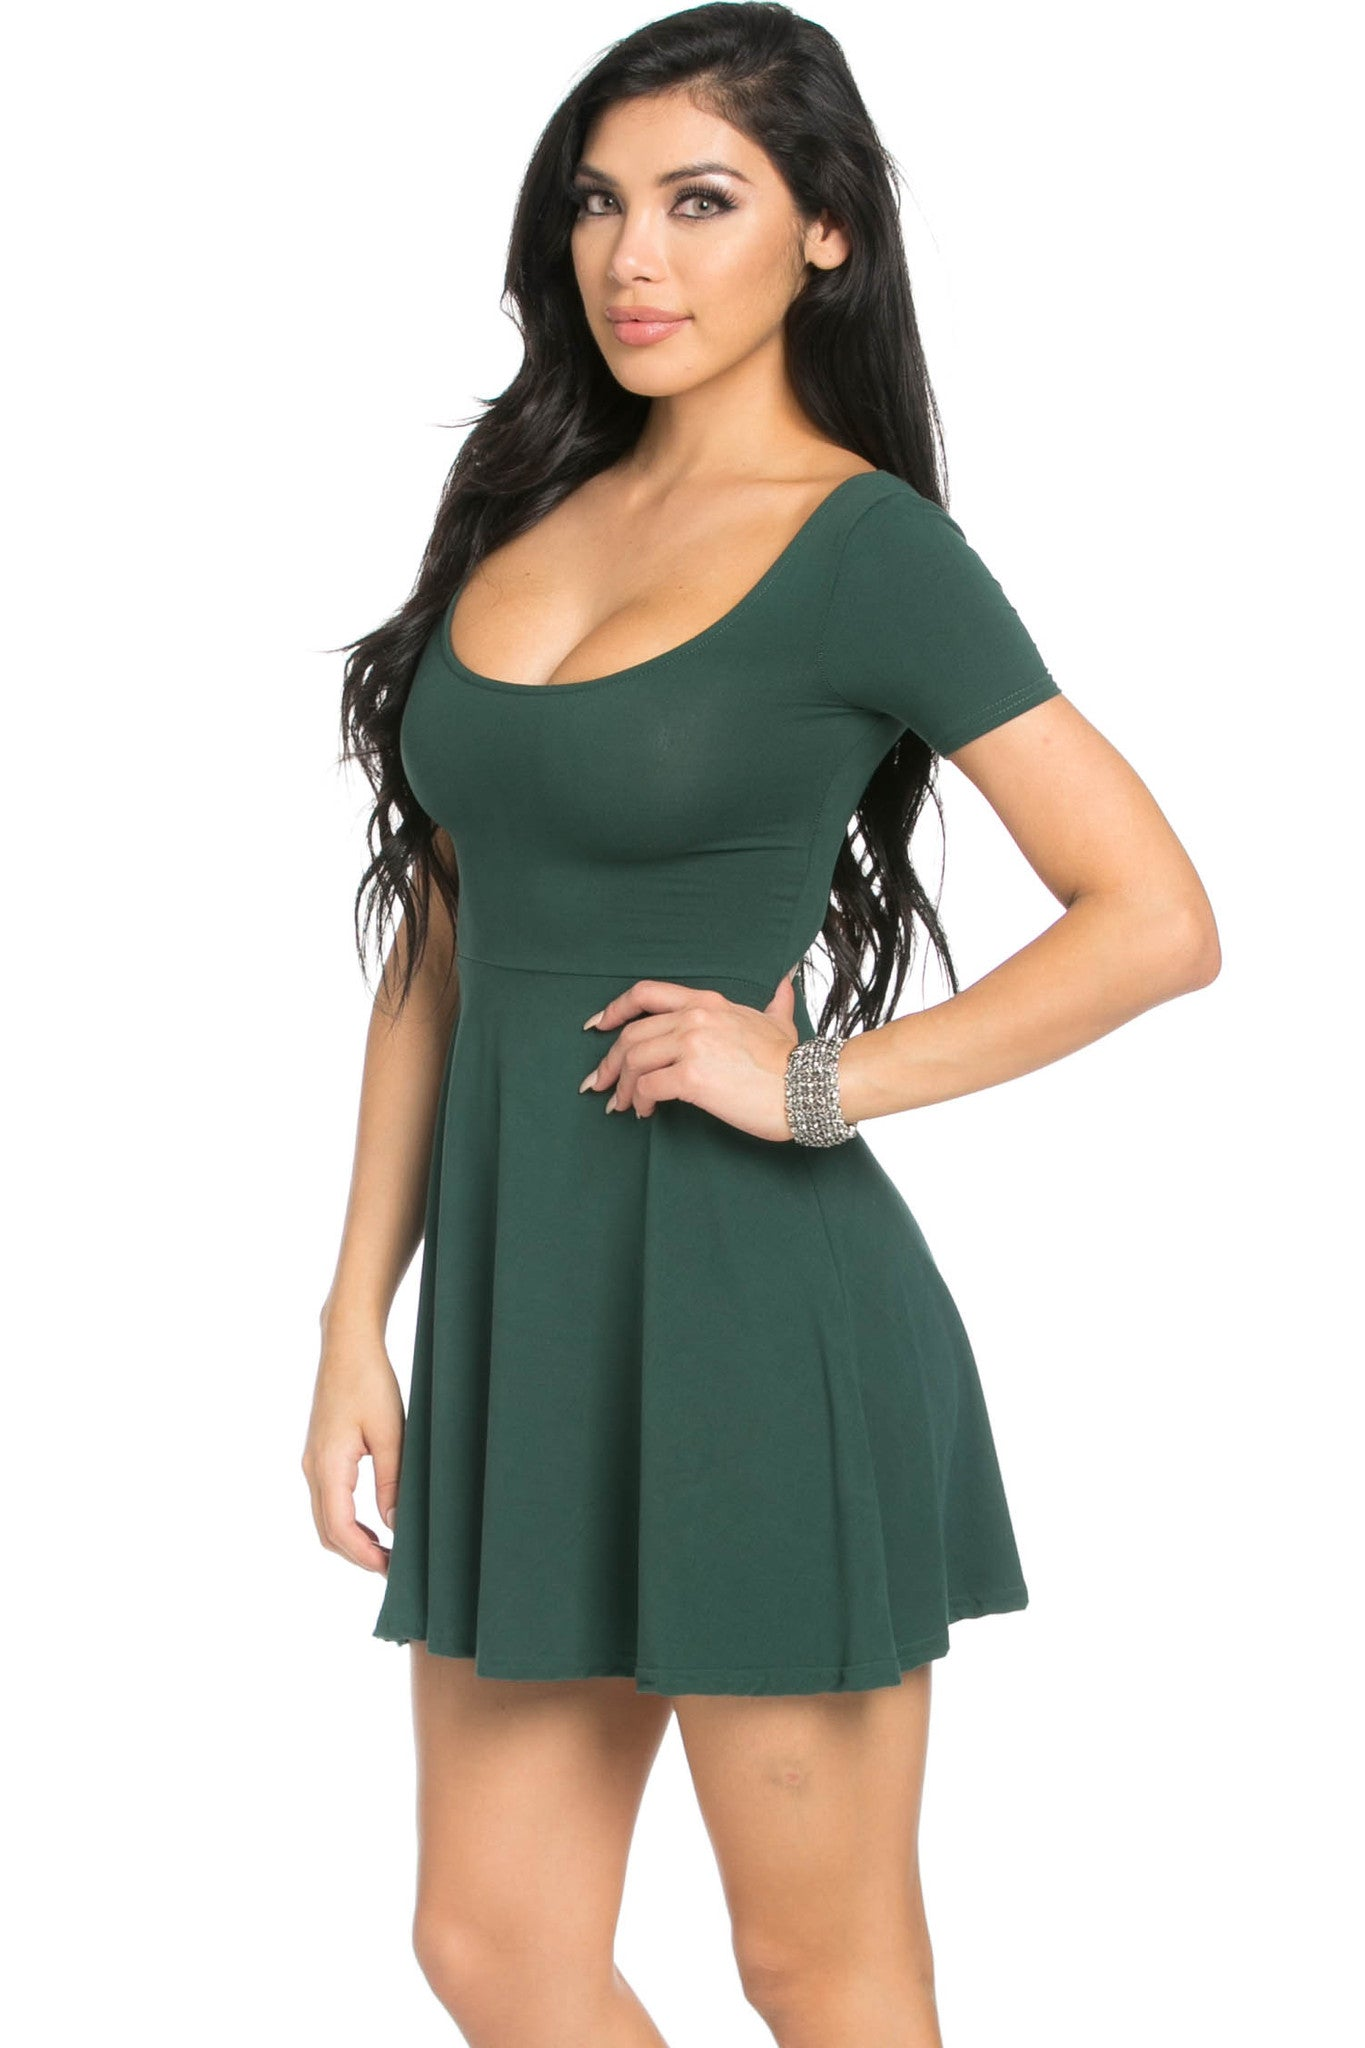 595bc6ff9b Micro Suede Green Mini Dress - Dresses - My Yuccie - 2